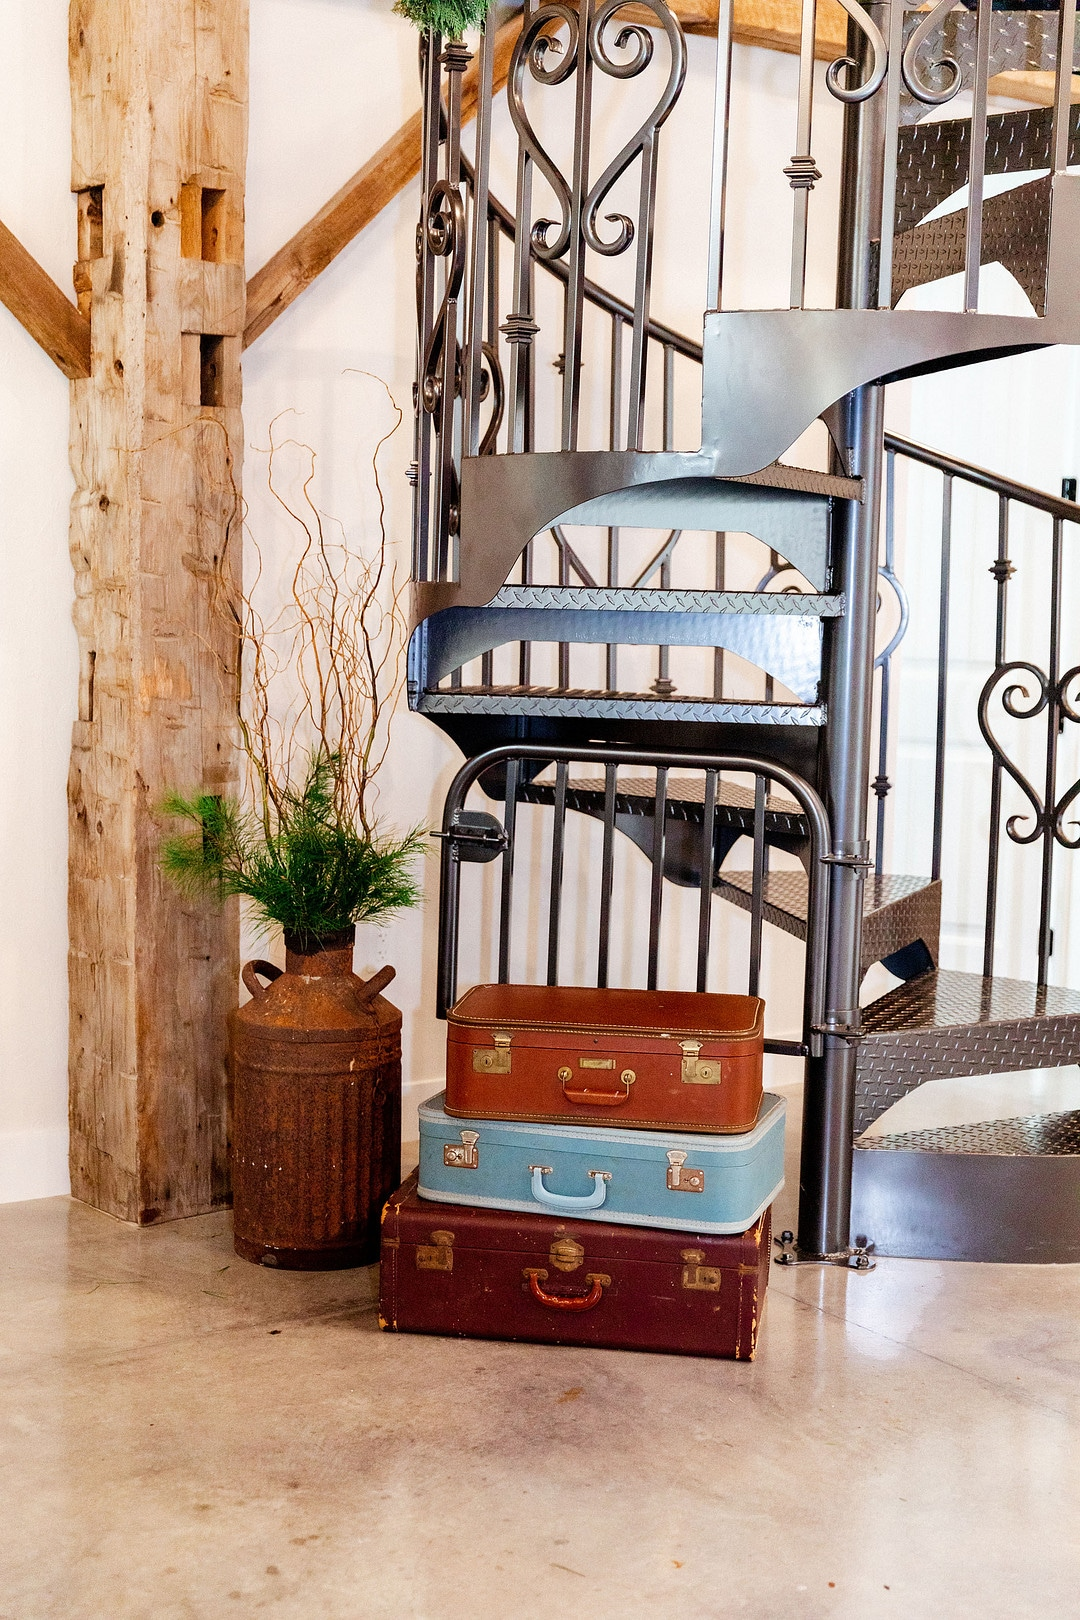 spiral staircase with three suitcases in front of it stacked on top of each other